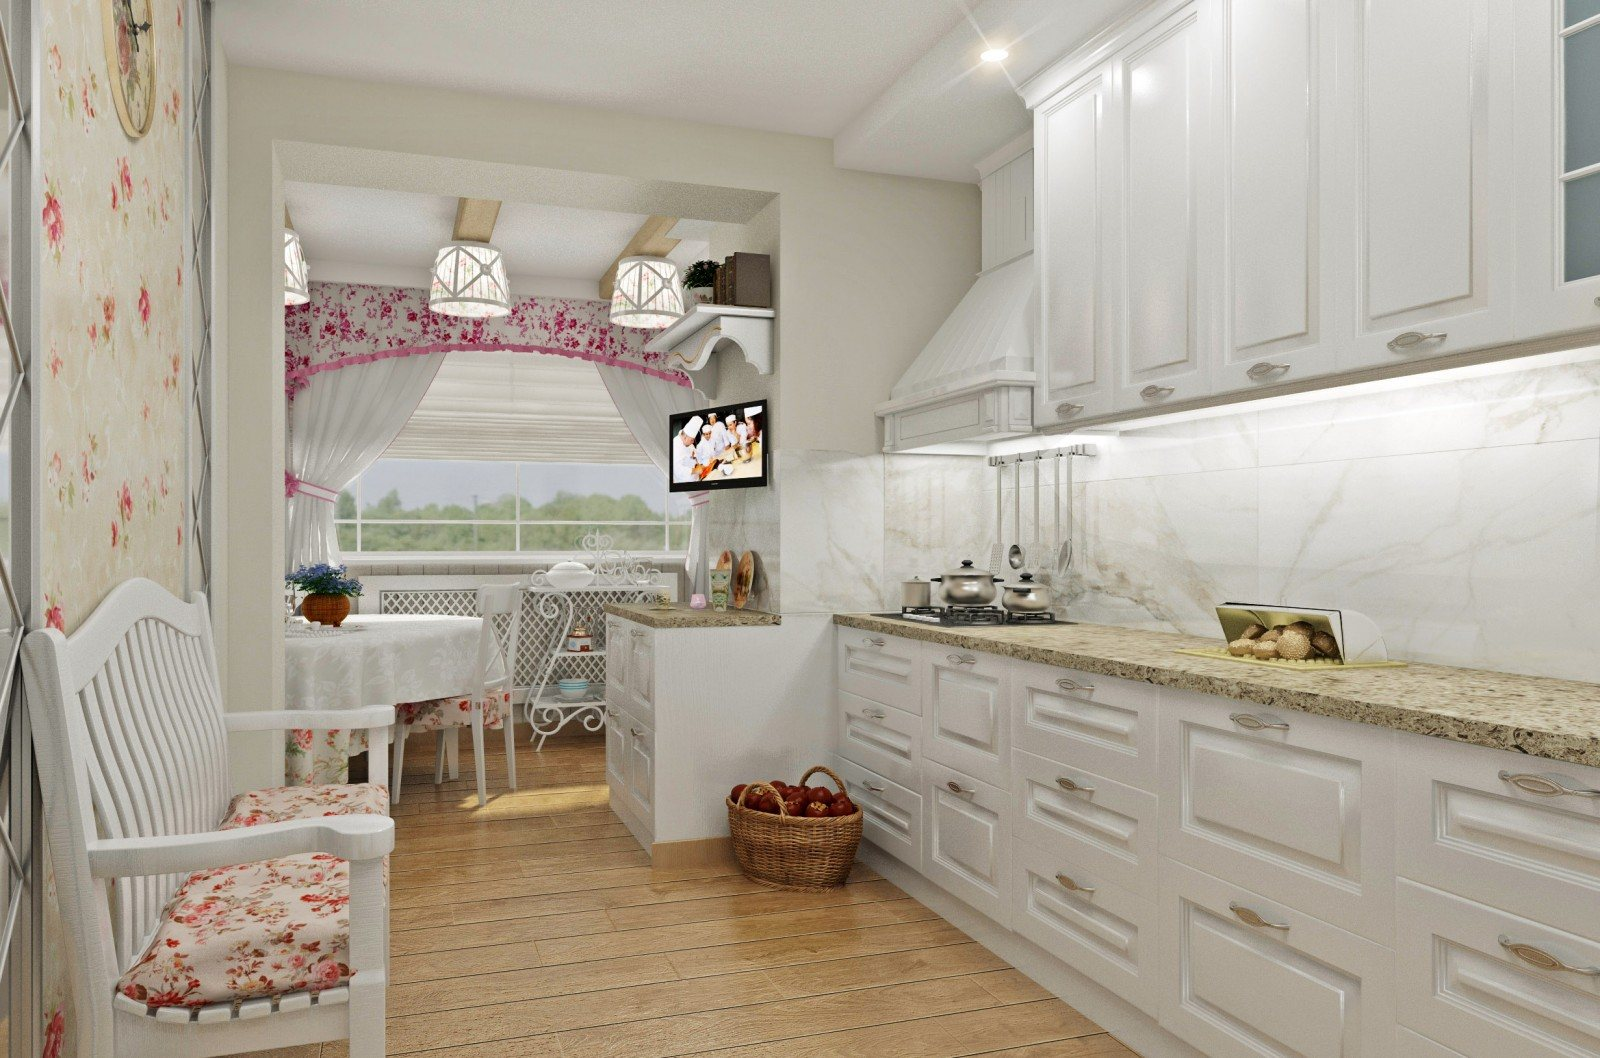 Wooden laminated floor for white cozy Provence styled kitchen